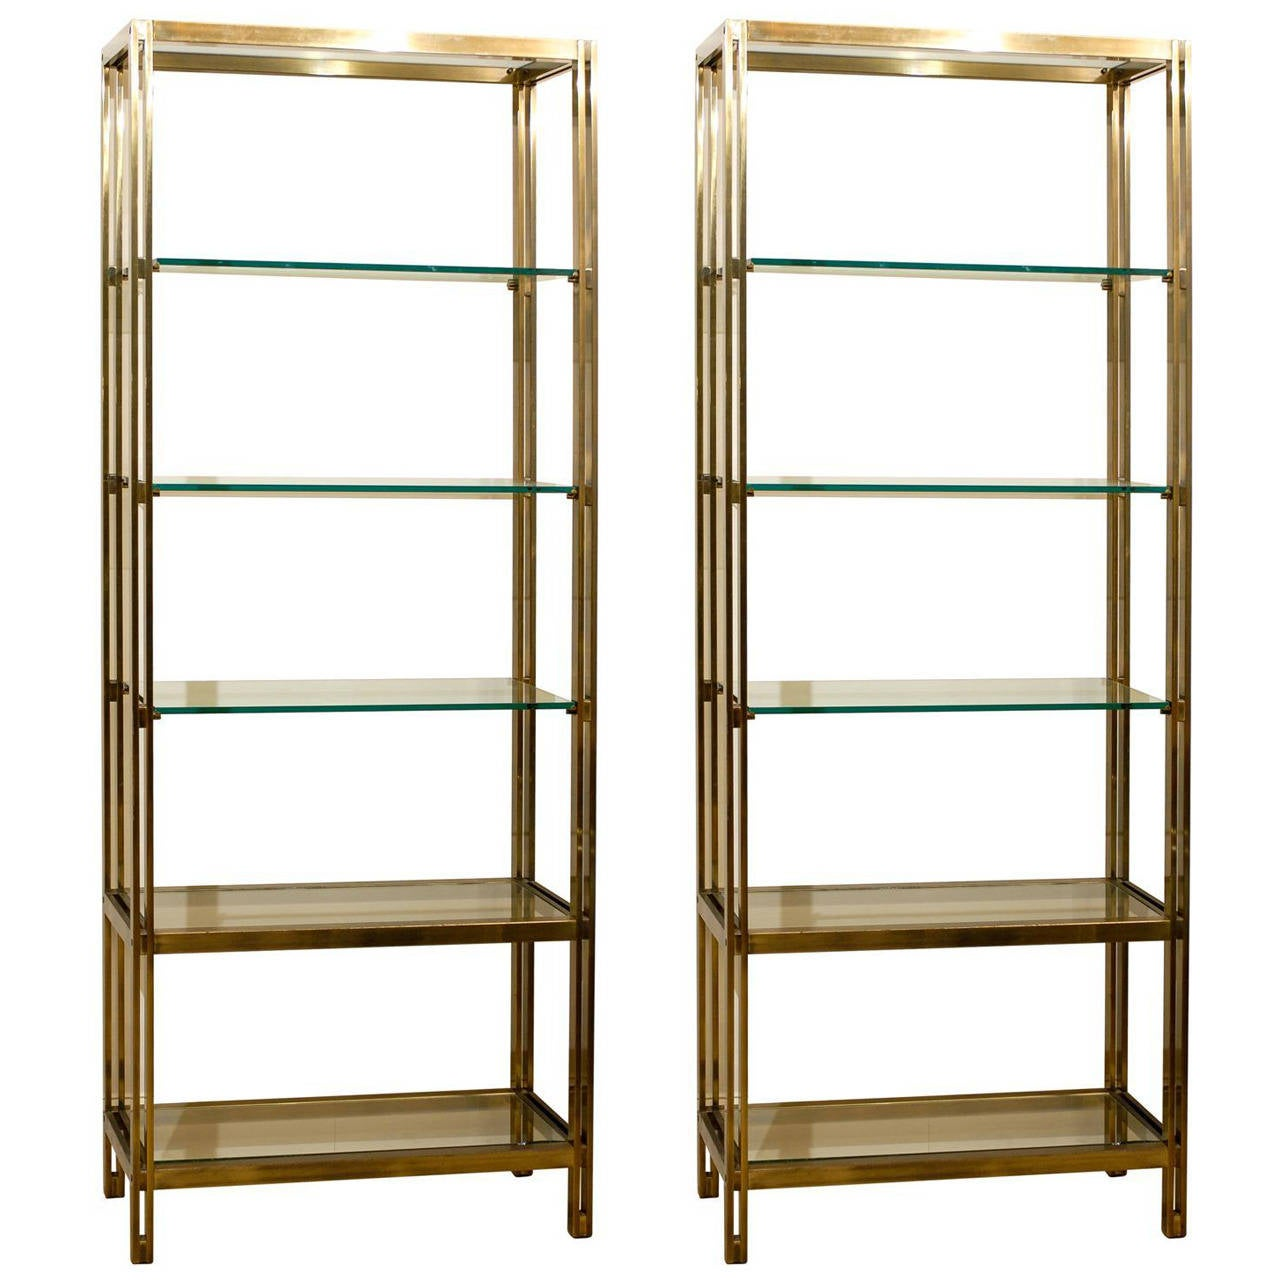 pair of brass and glass tag res at 1stdibs. Black Bedroom Furniture Sets. Home Design Ideas